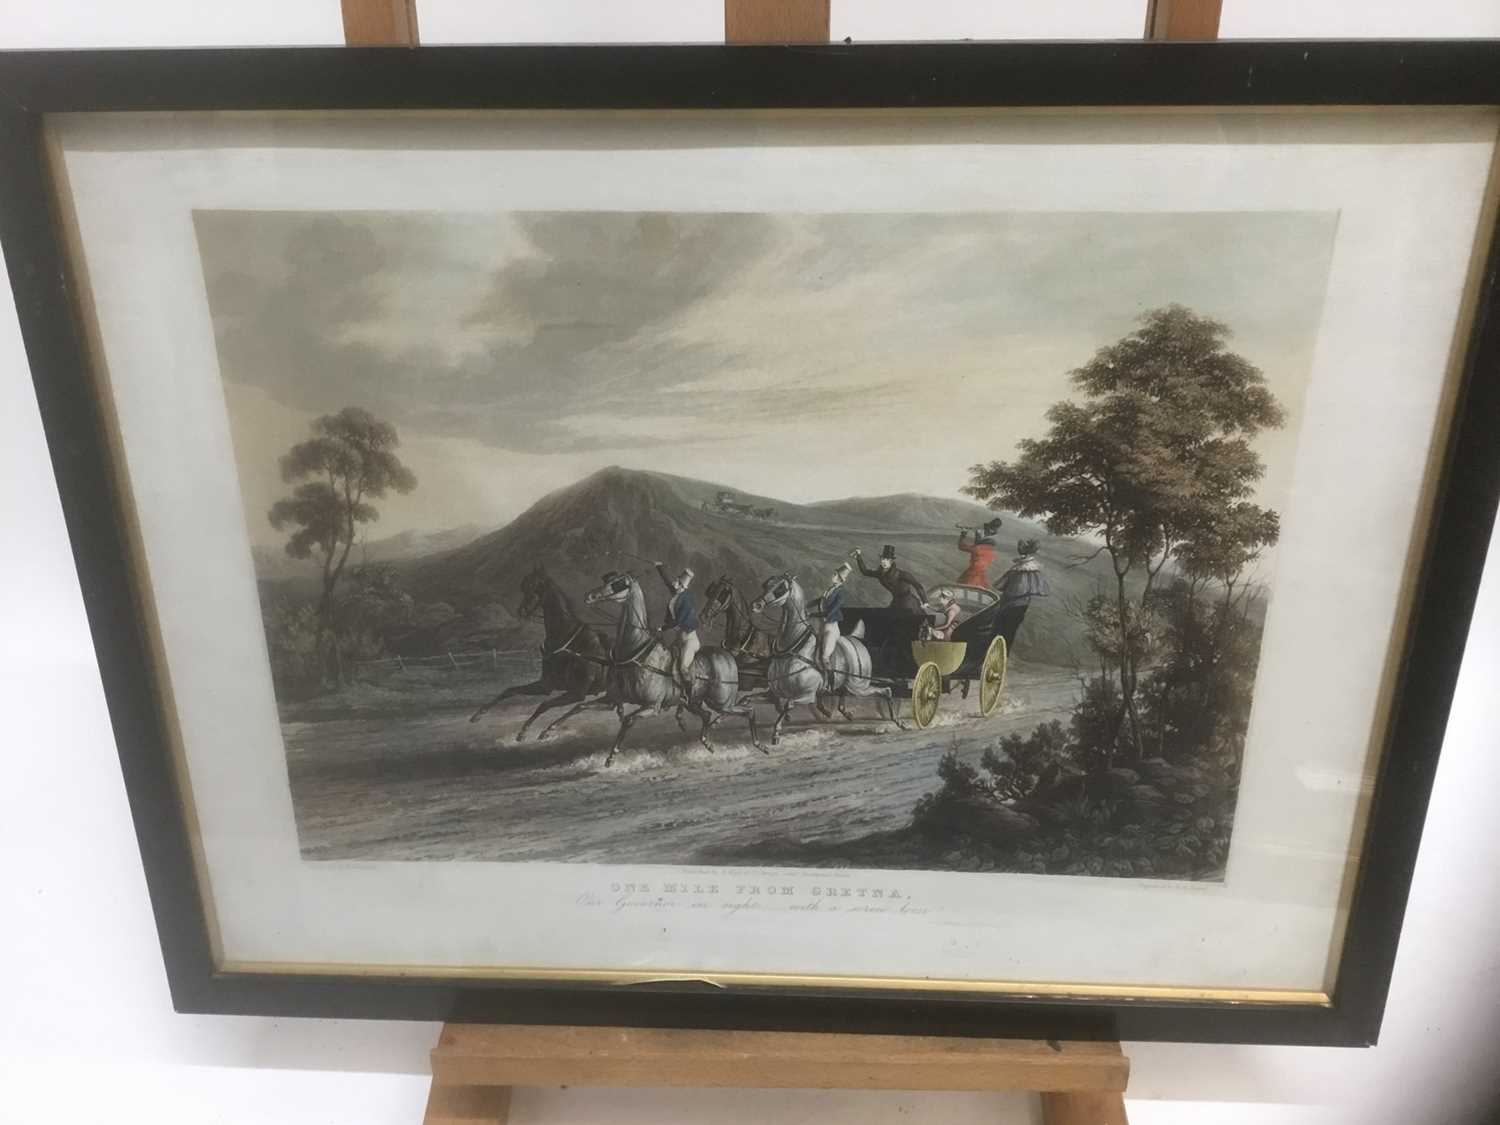 Pair of 19th century hand coloured aquatints by R. Reeves after C. Newhouse, coaching scenes entitle - Image 11 of 11